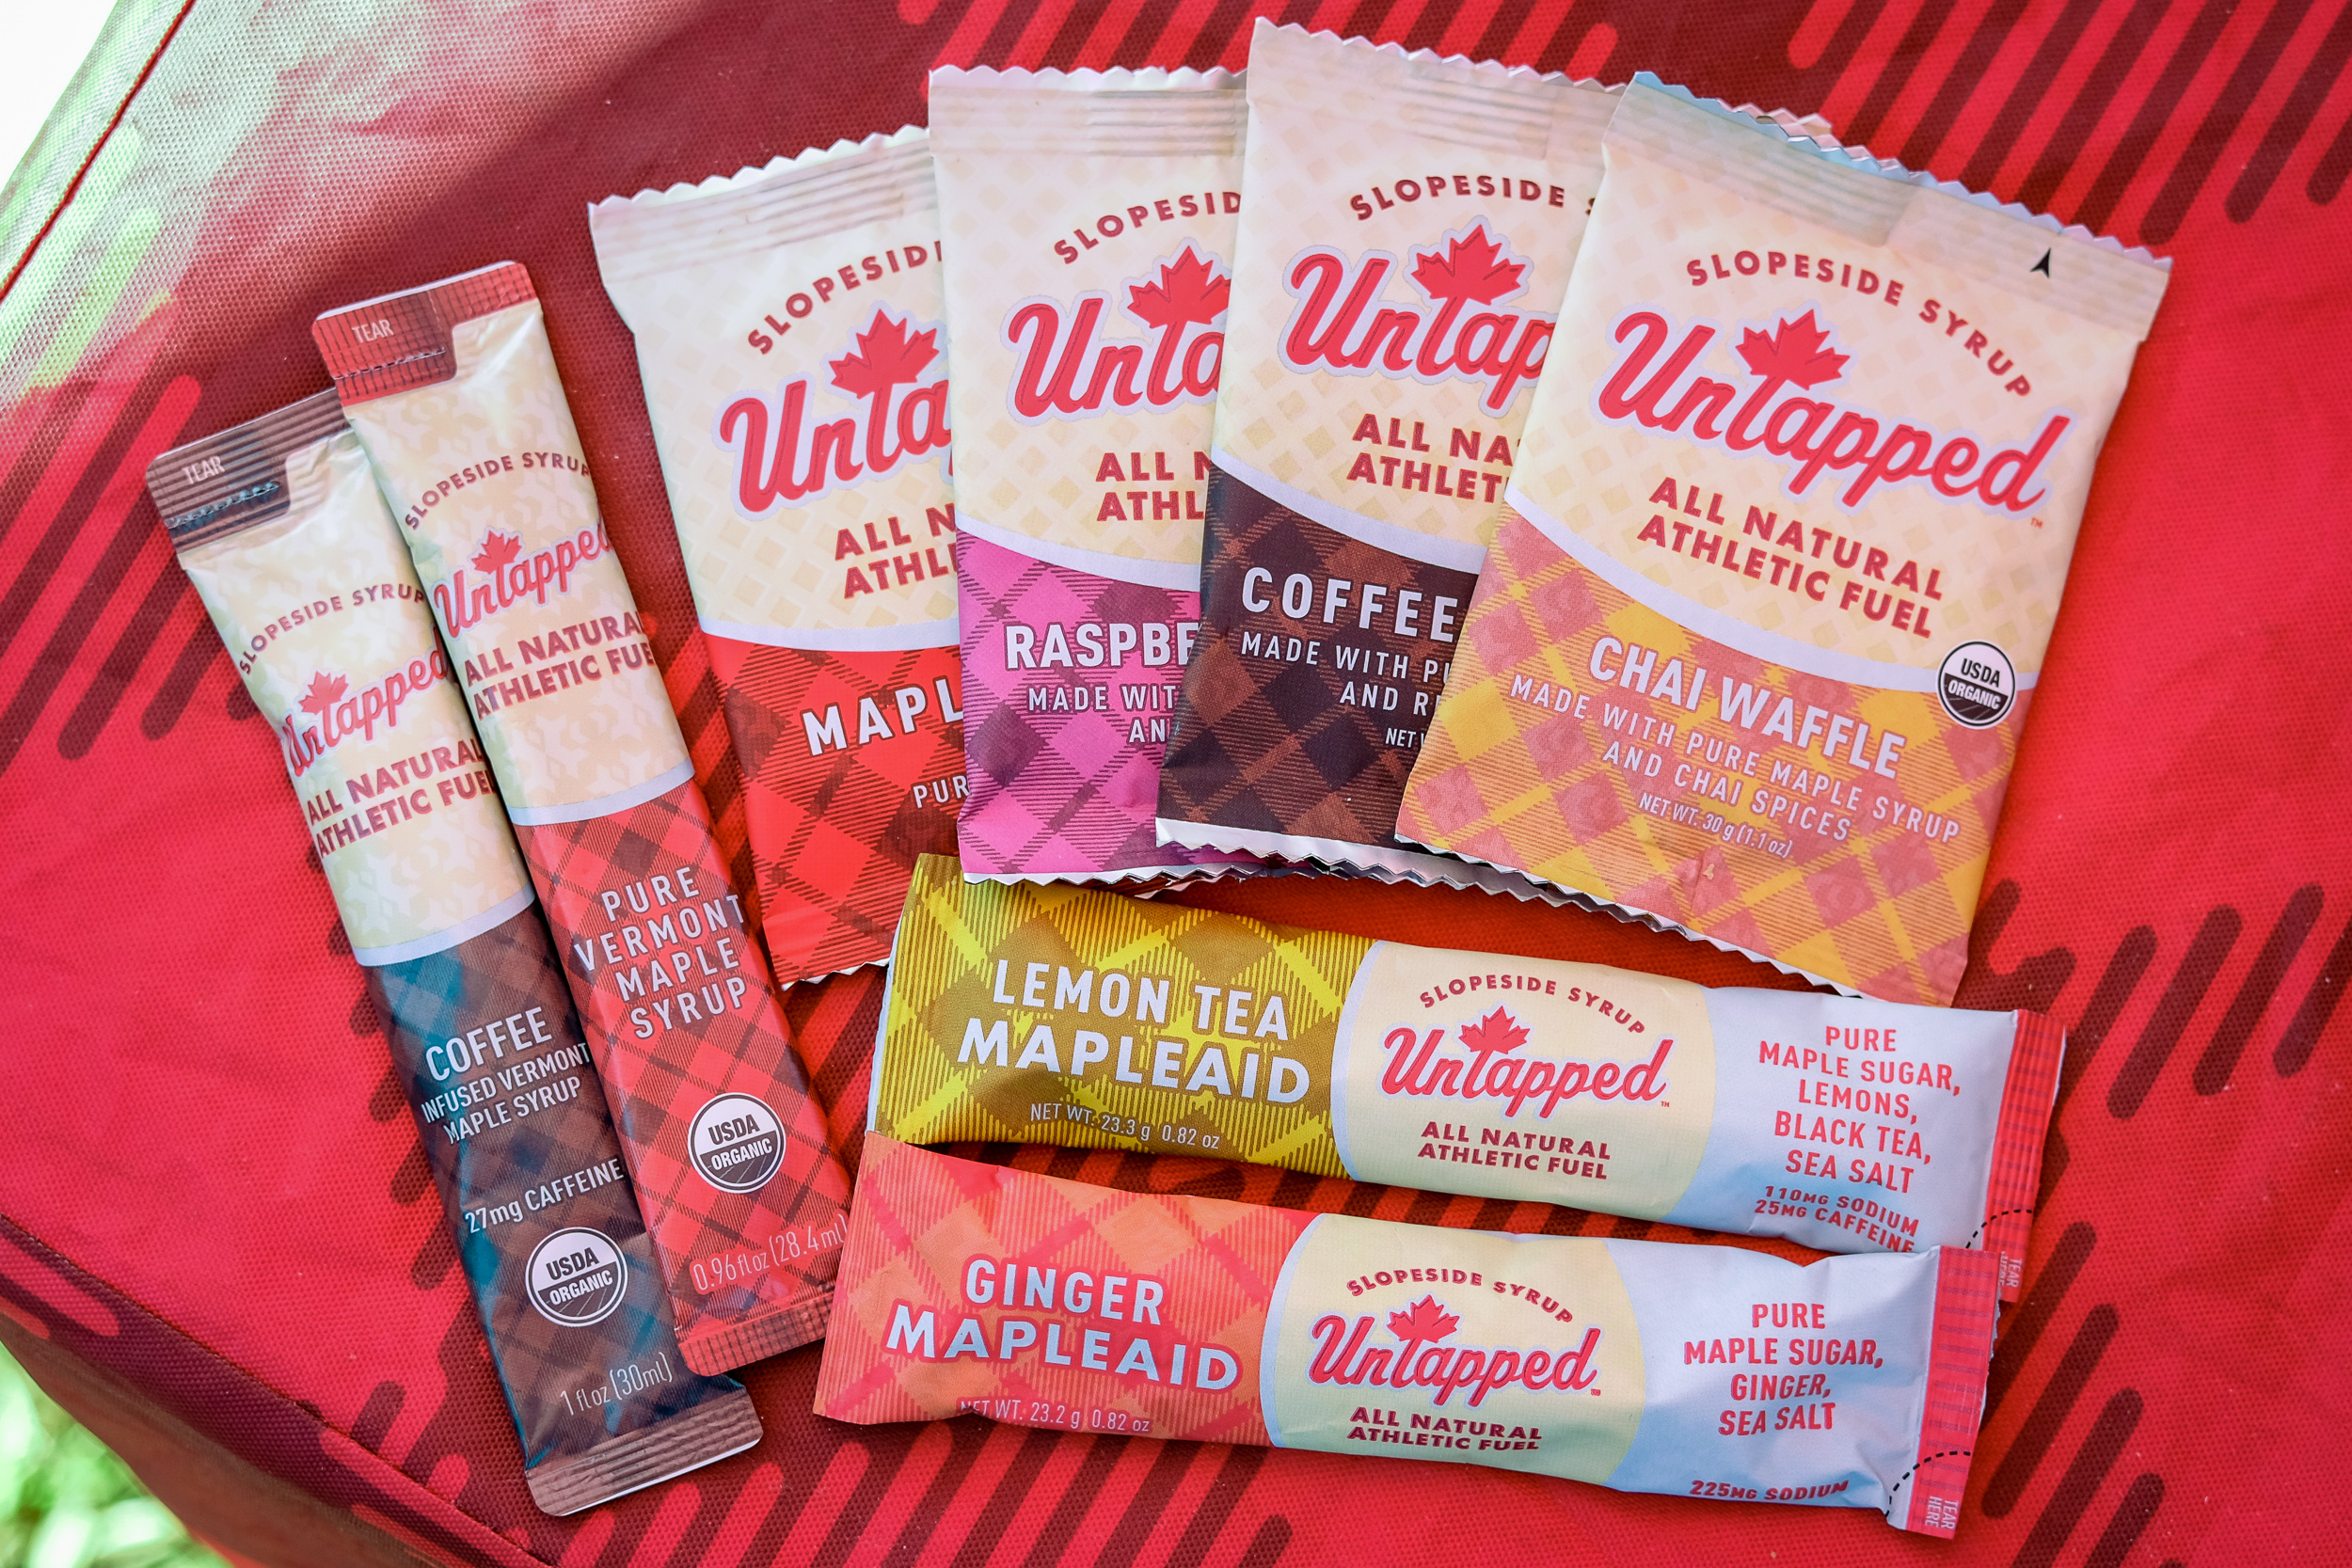 UnTapped Better Packaging and New Flavors